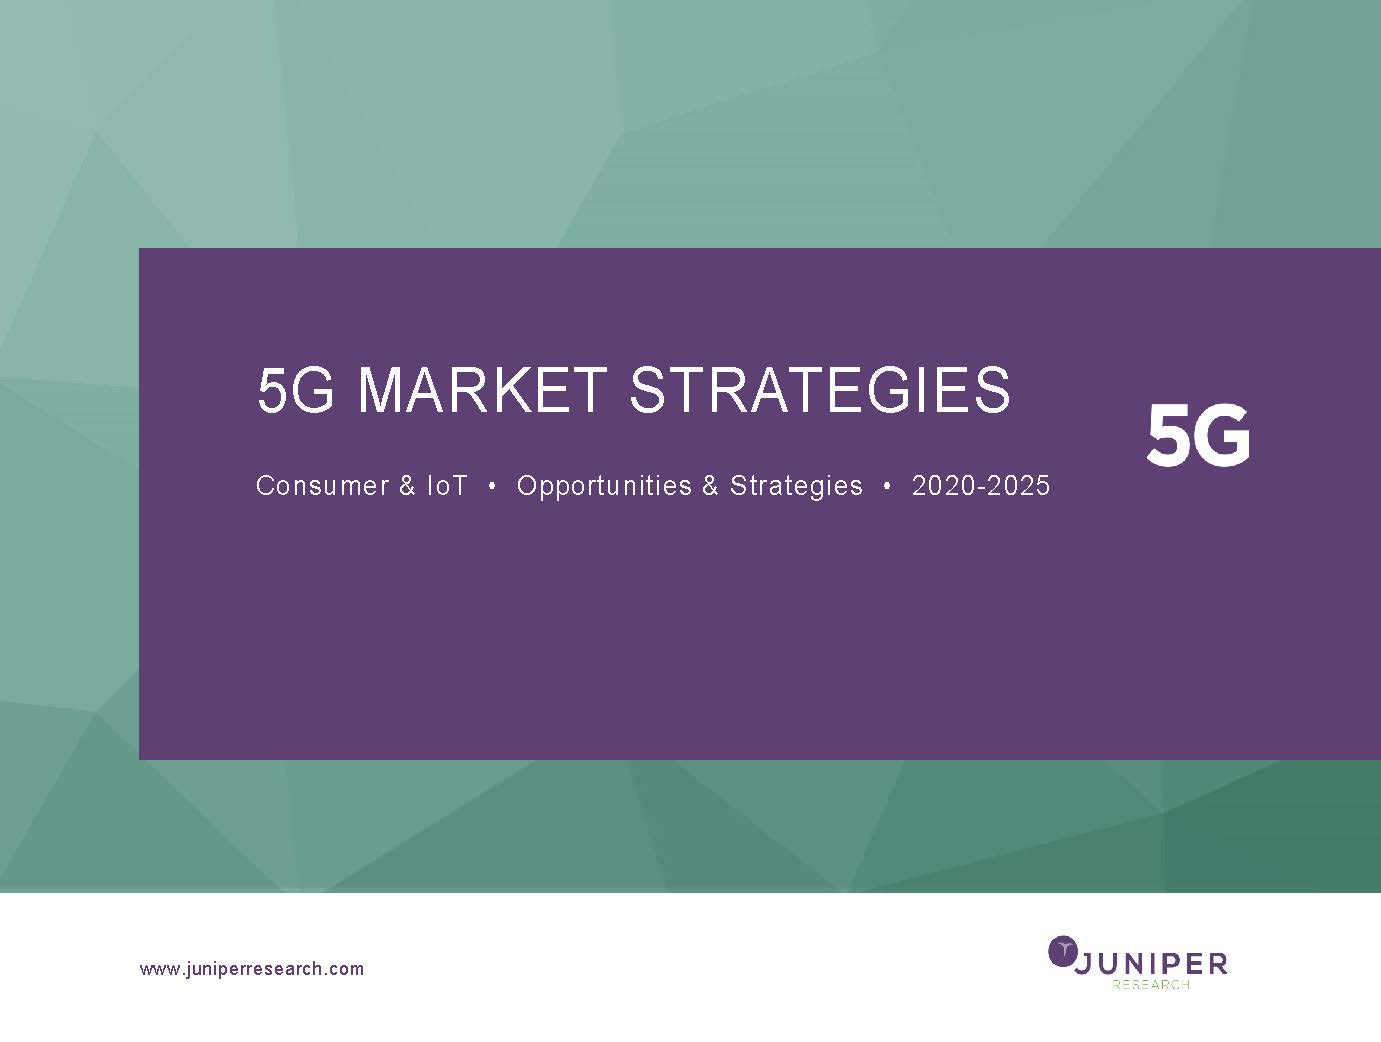 5G Market Strategies